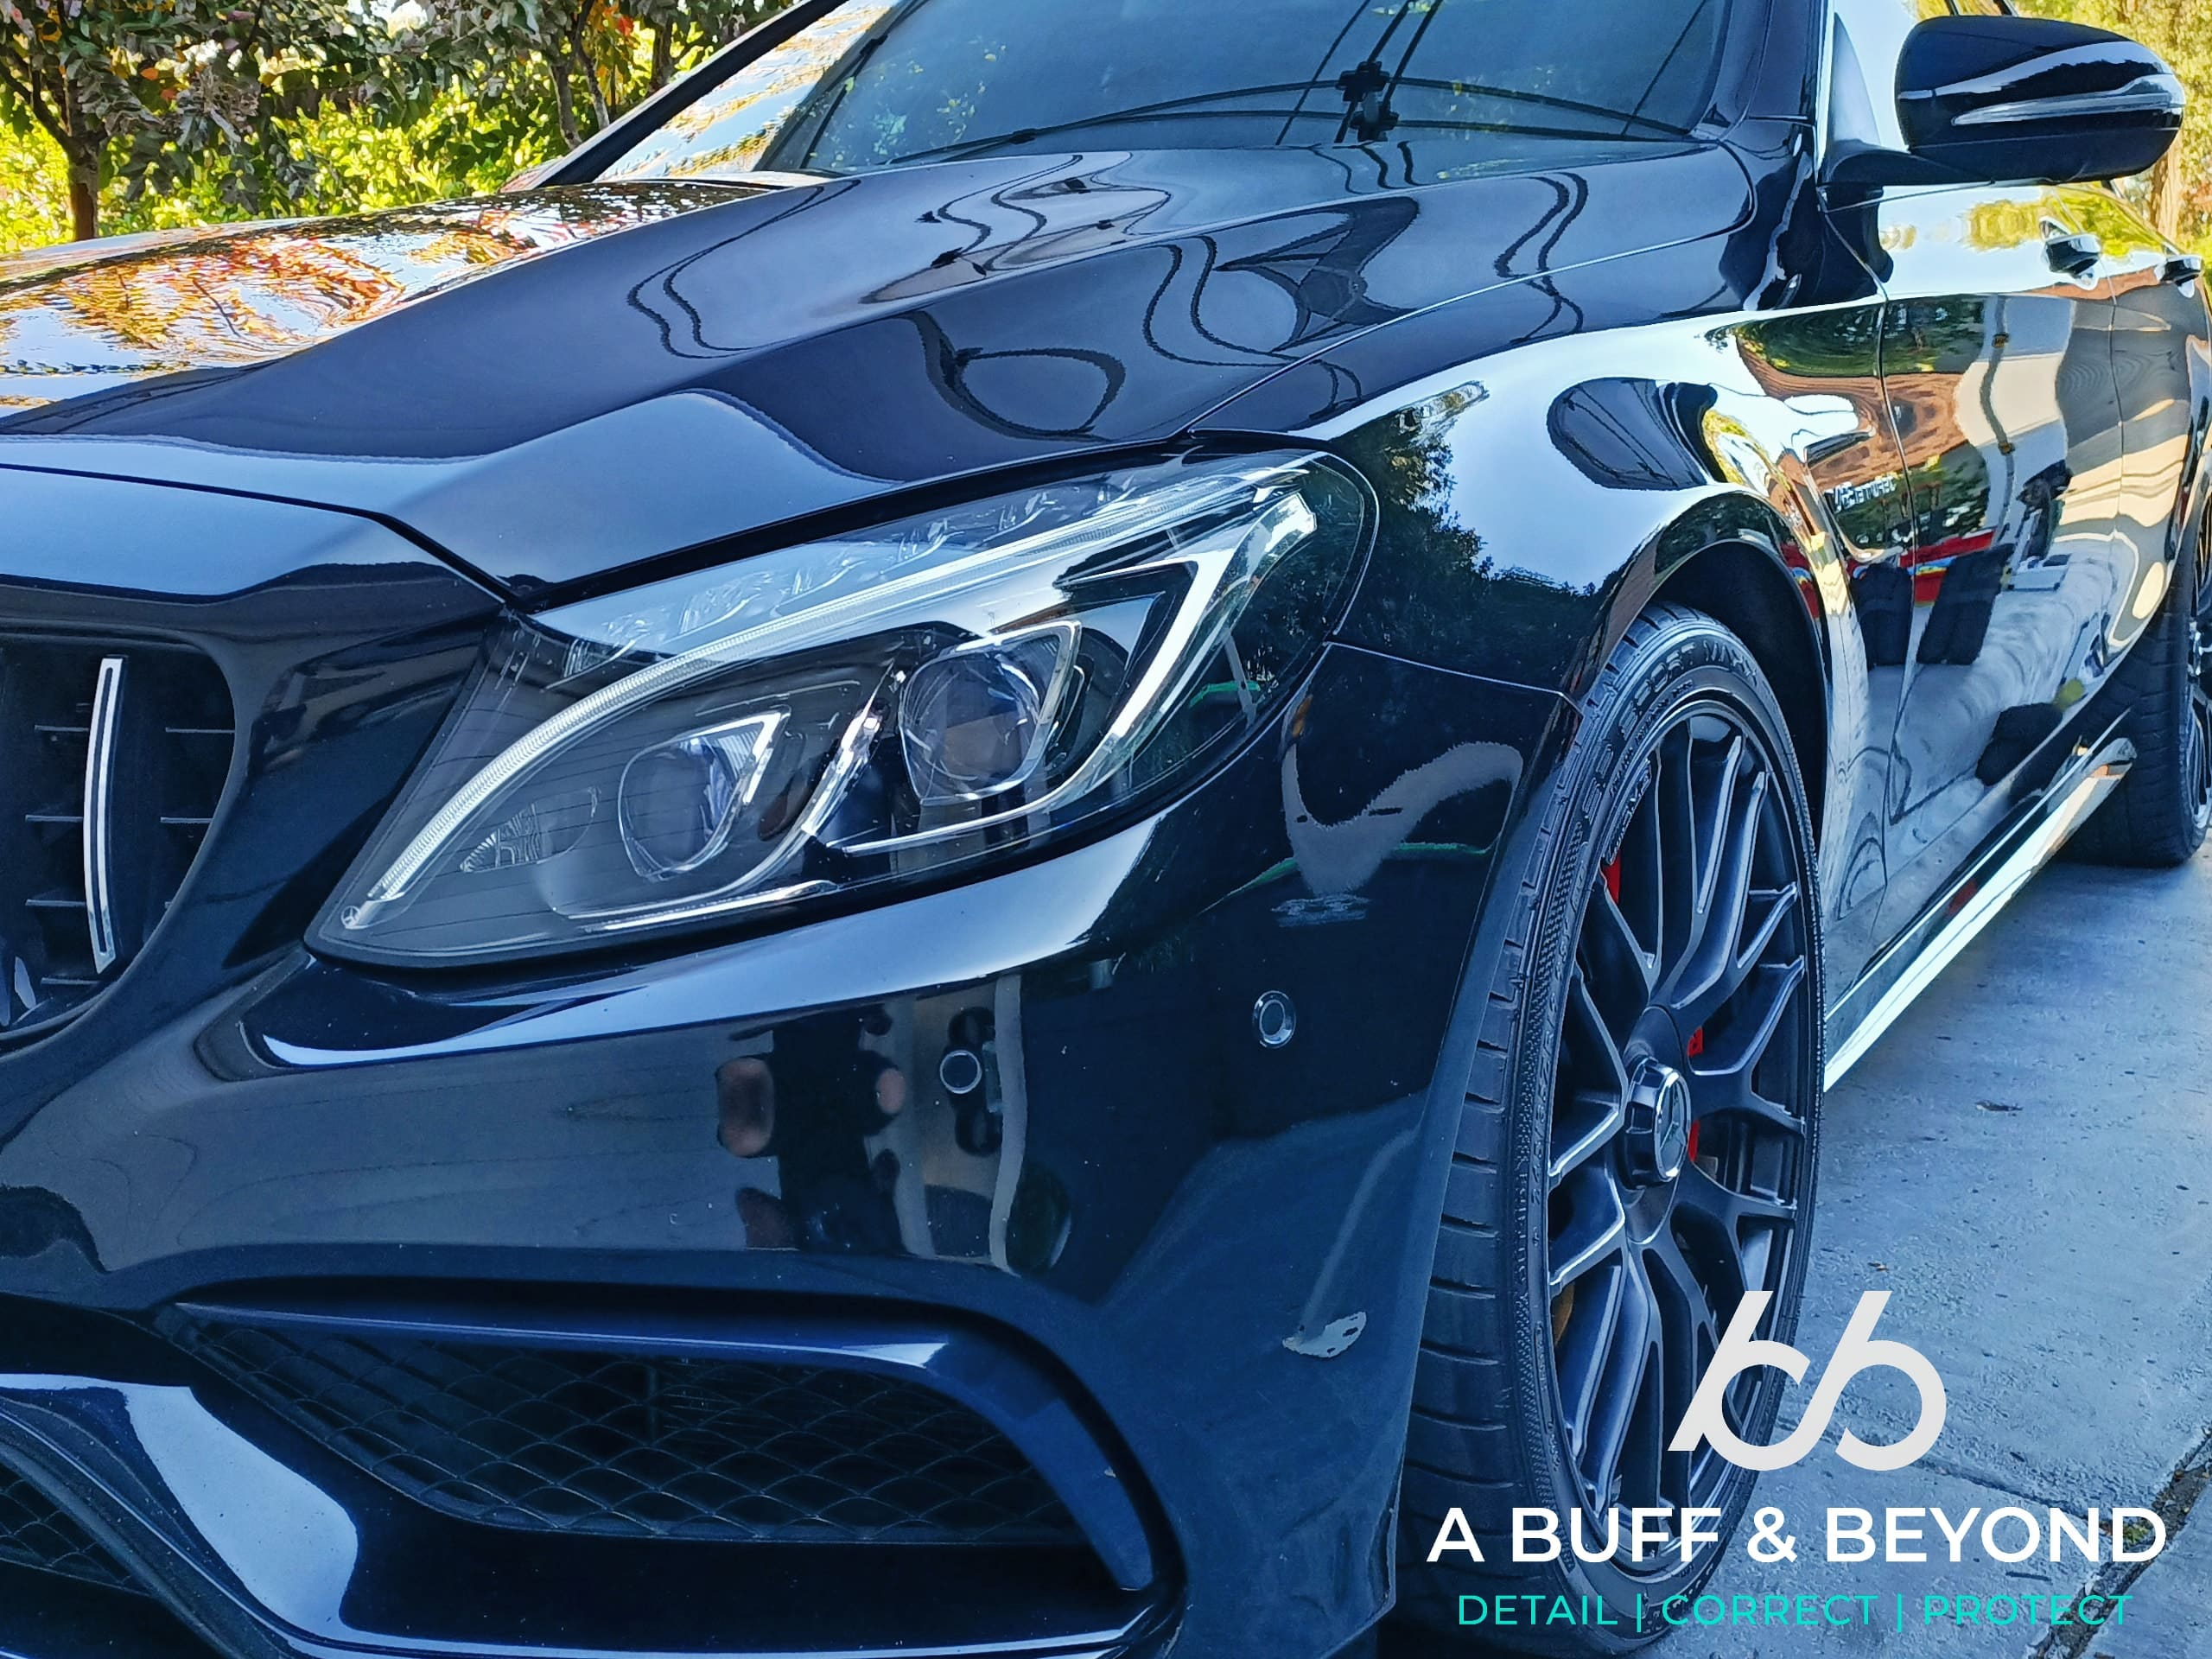 MERCEDES C63S Black detail and stage 1 paint correction